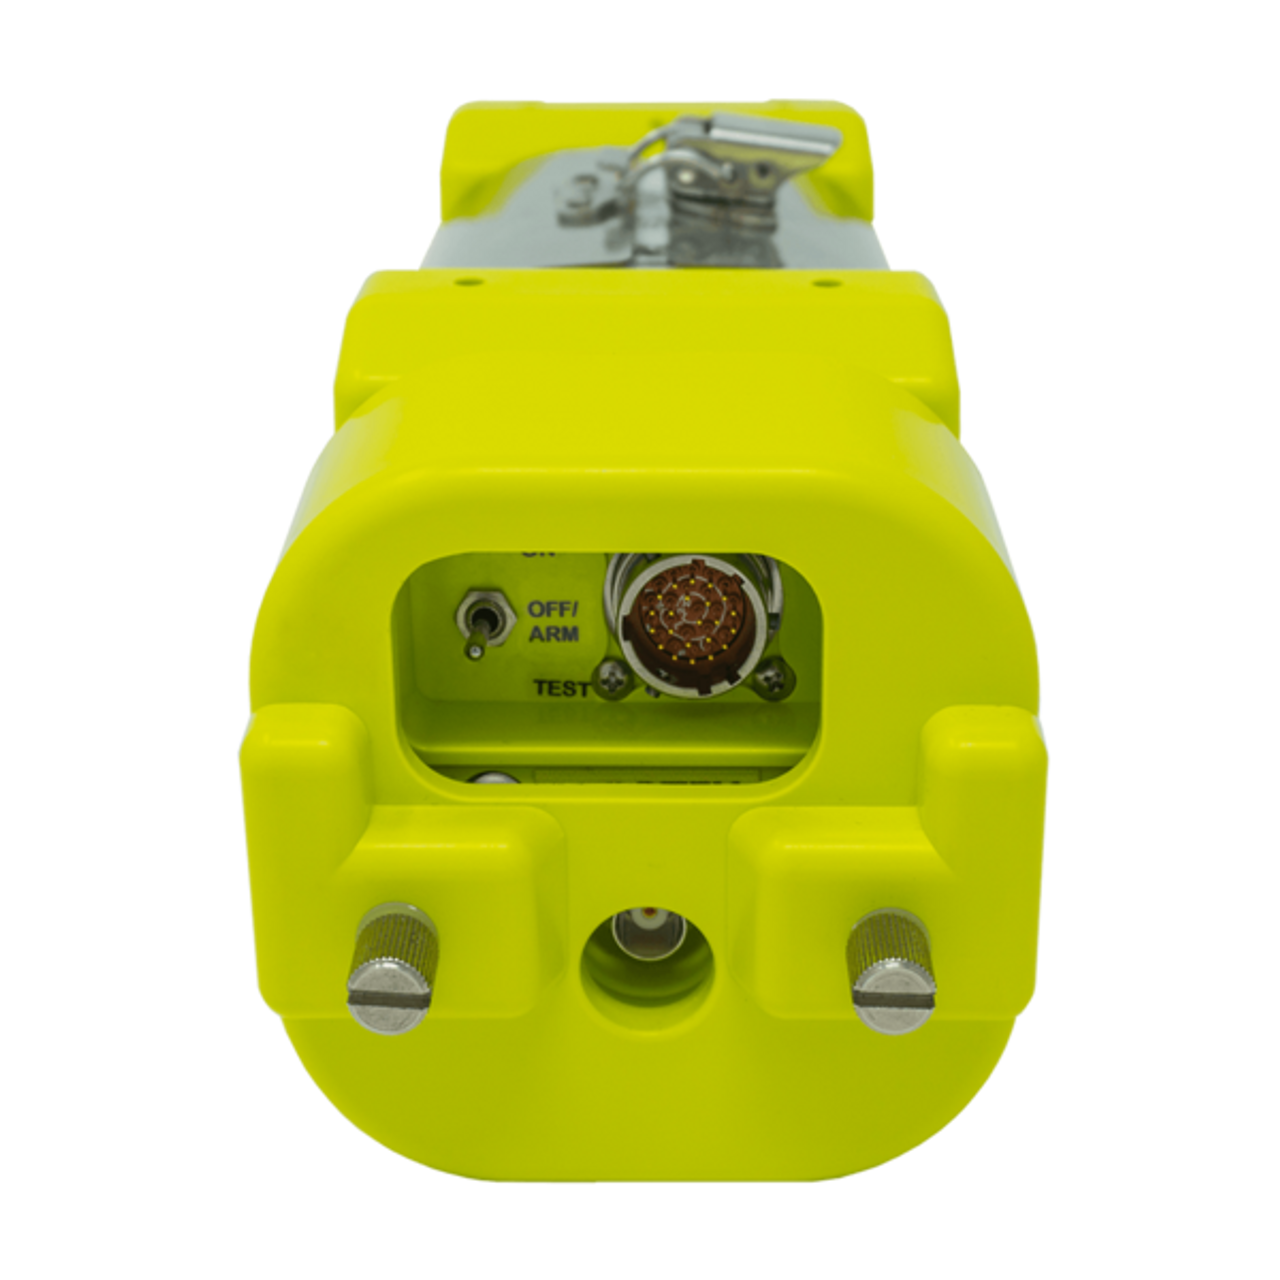 The Artex ELT 4000 is a transport-grade ELT that utilizes alkaline batteries. The Artex ELT 4000 is completely exempt from any FAA lithium battery compliance issues and ships non hazmat.     In the event of an emergency, the ELT 4000 can be activated manually or automatically to quickly alert local search and rescue teams of your situation.